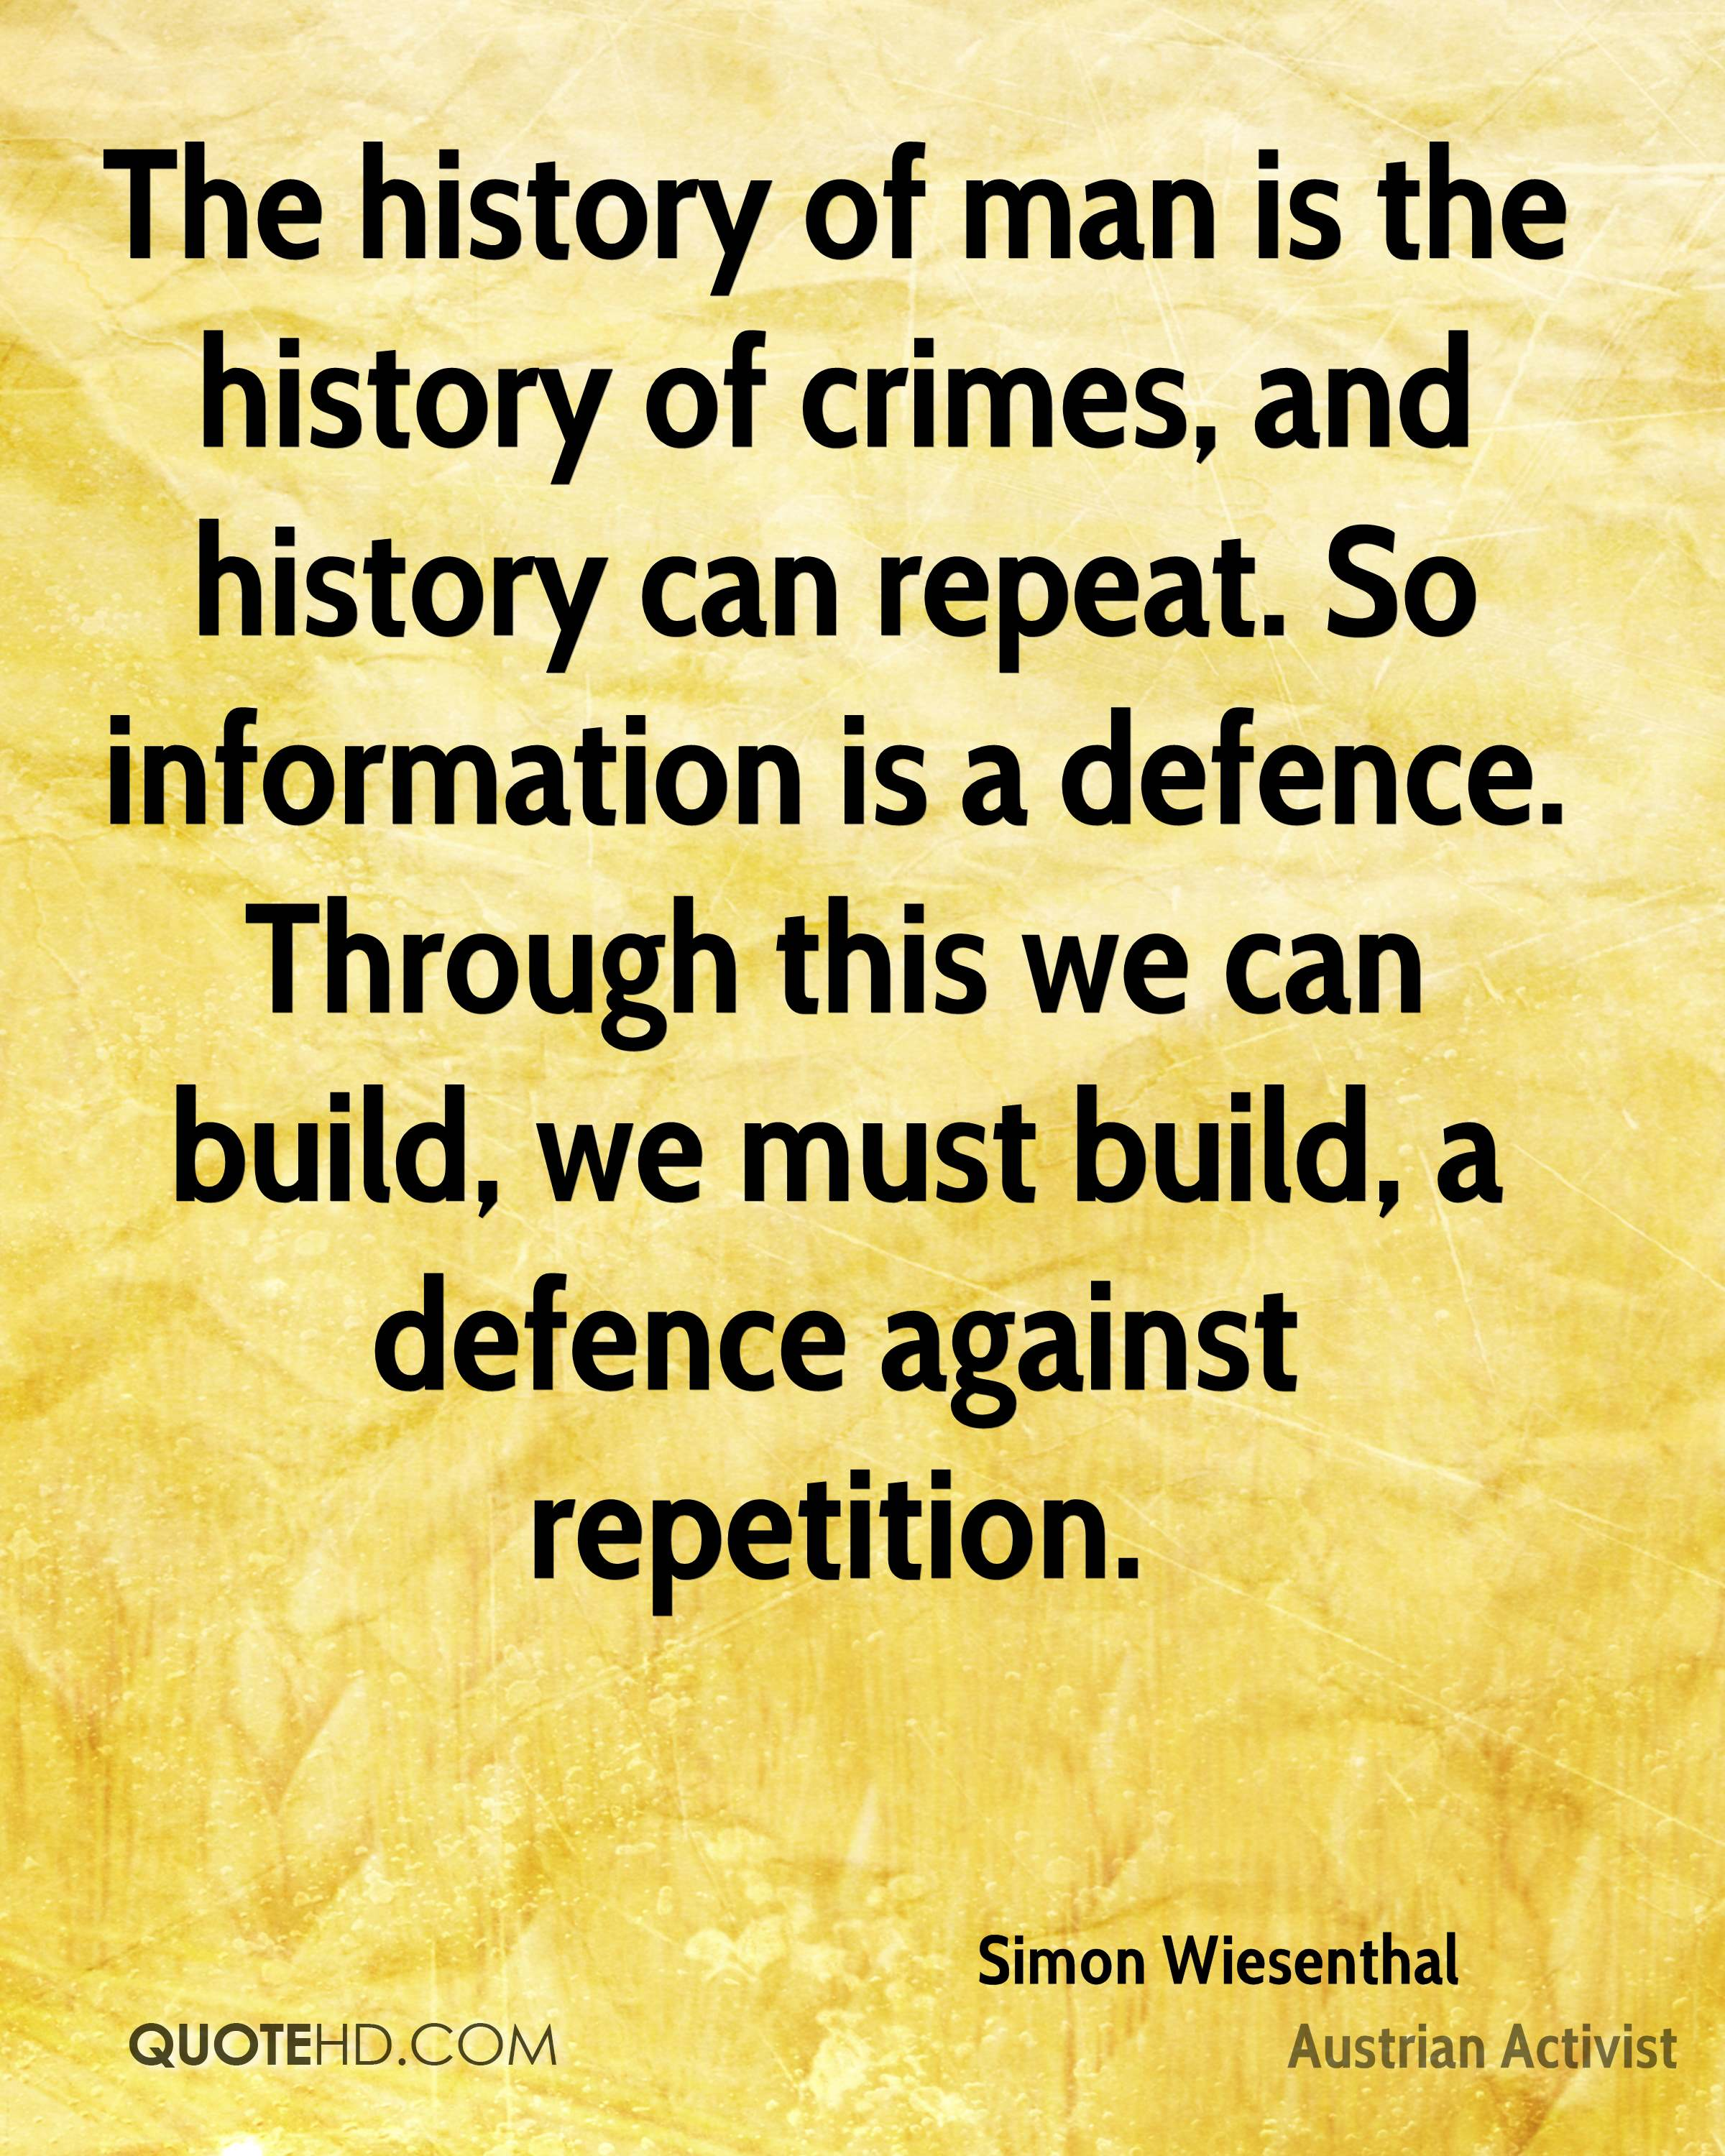 The history of man is the history of crimes, and history can repeat. So information is a defence. Through this we can build, we must build, a defence against repetition.